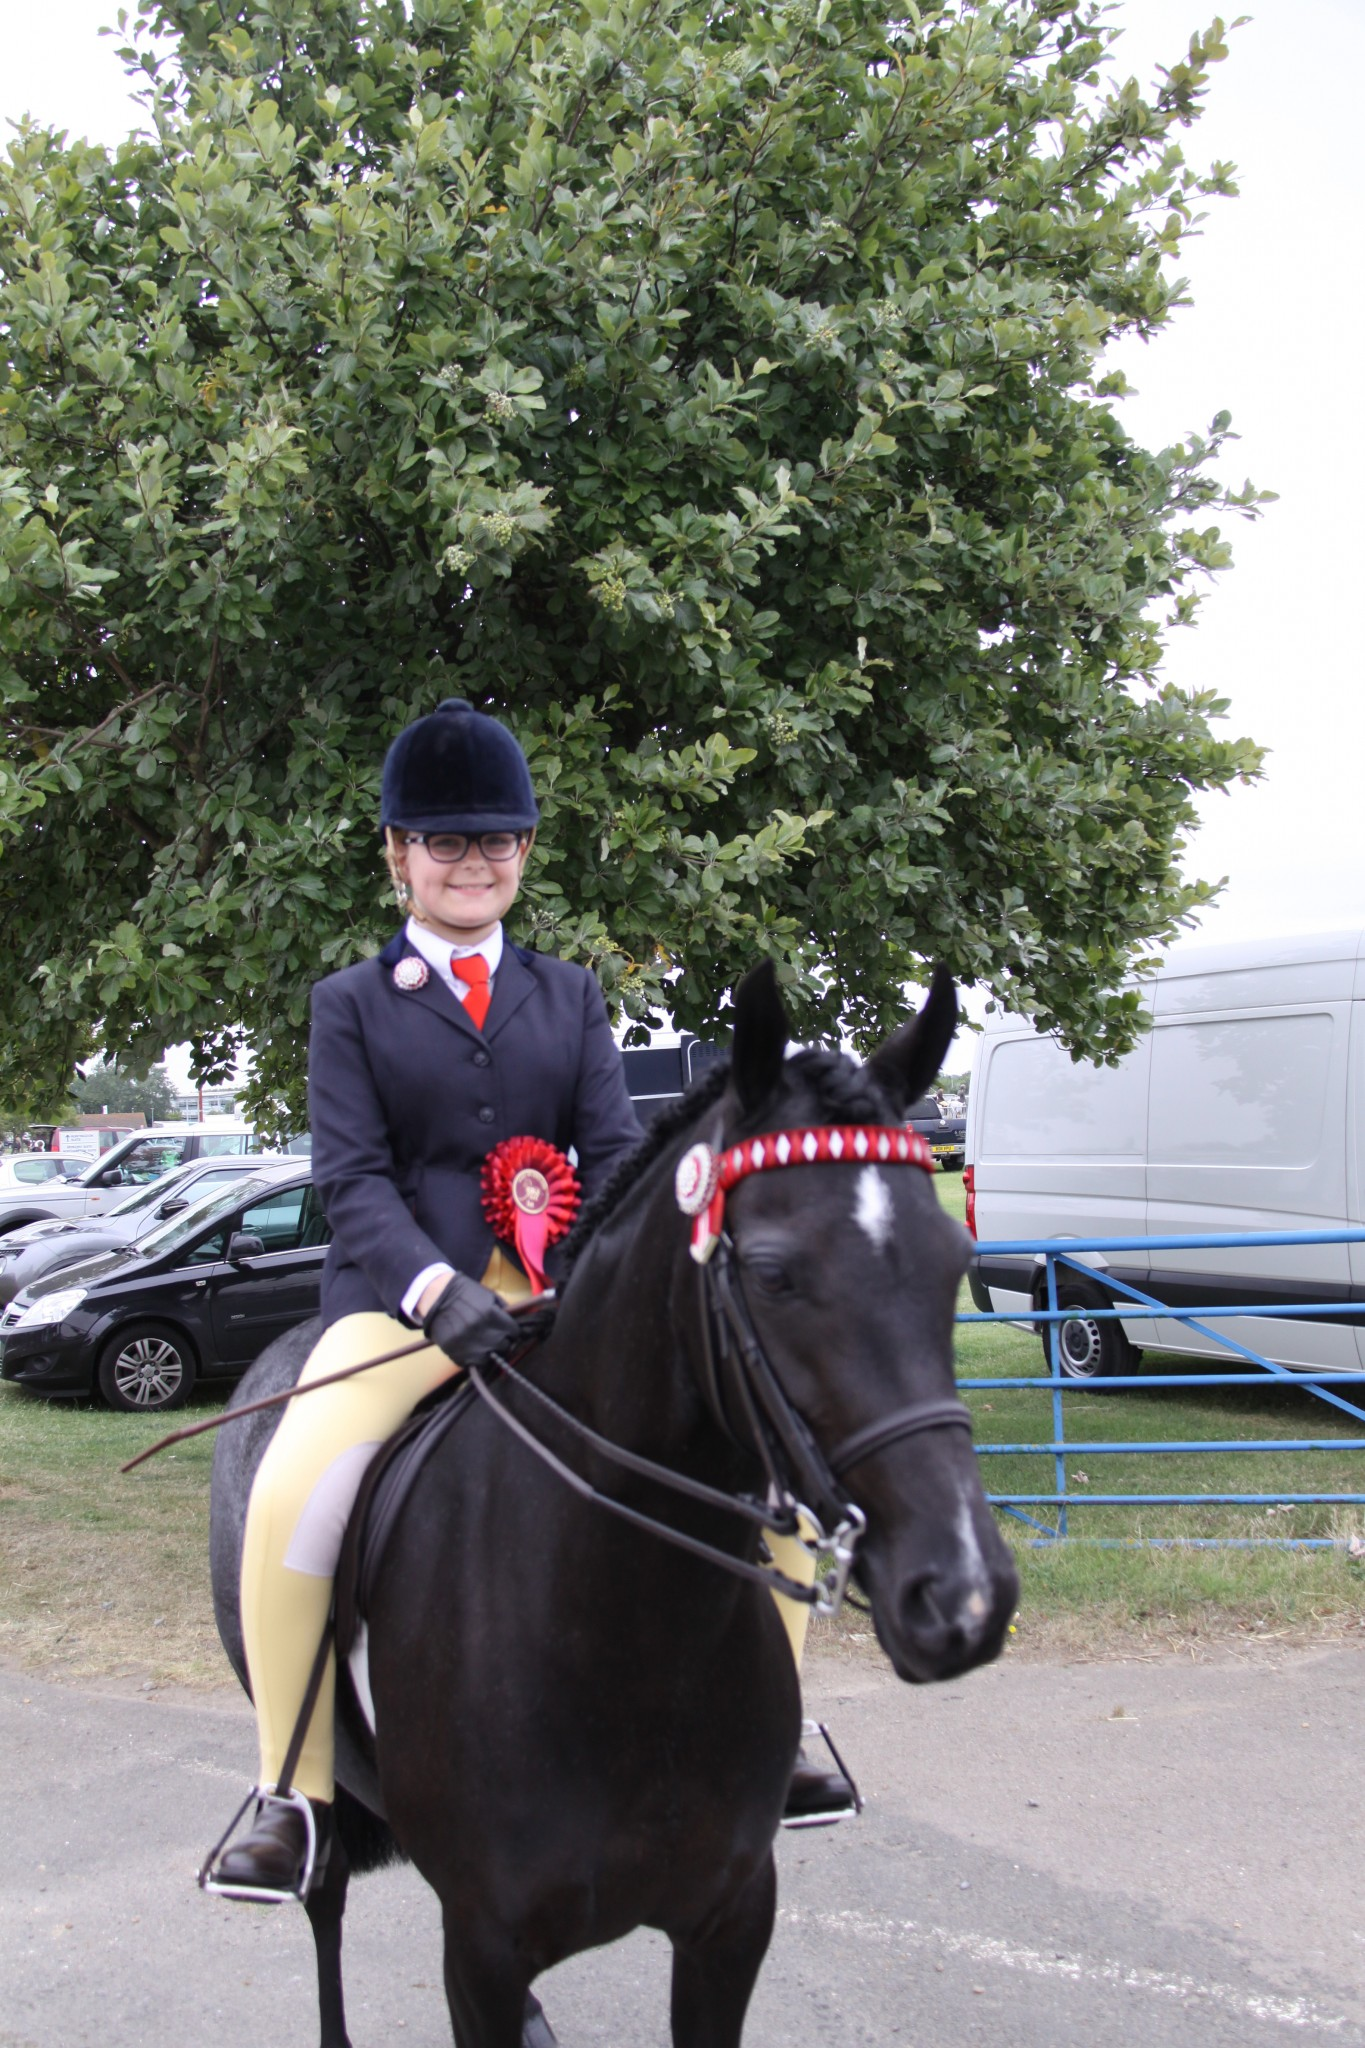 Olivia and Maude - Olivia and Maude – Equifest Winners!